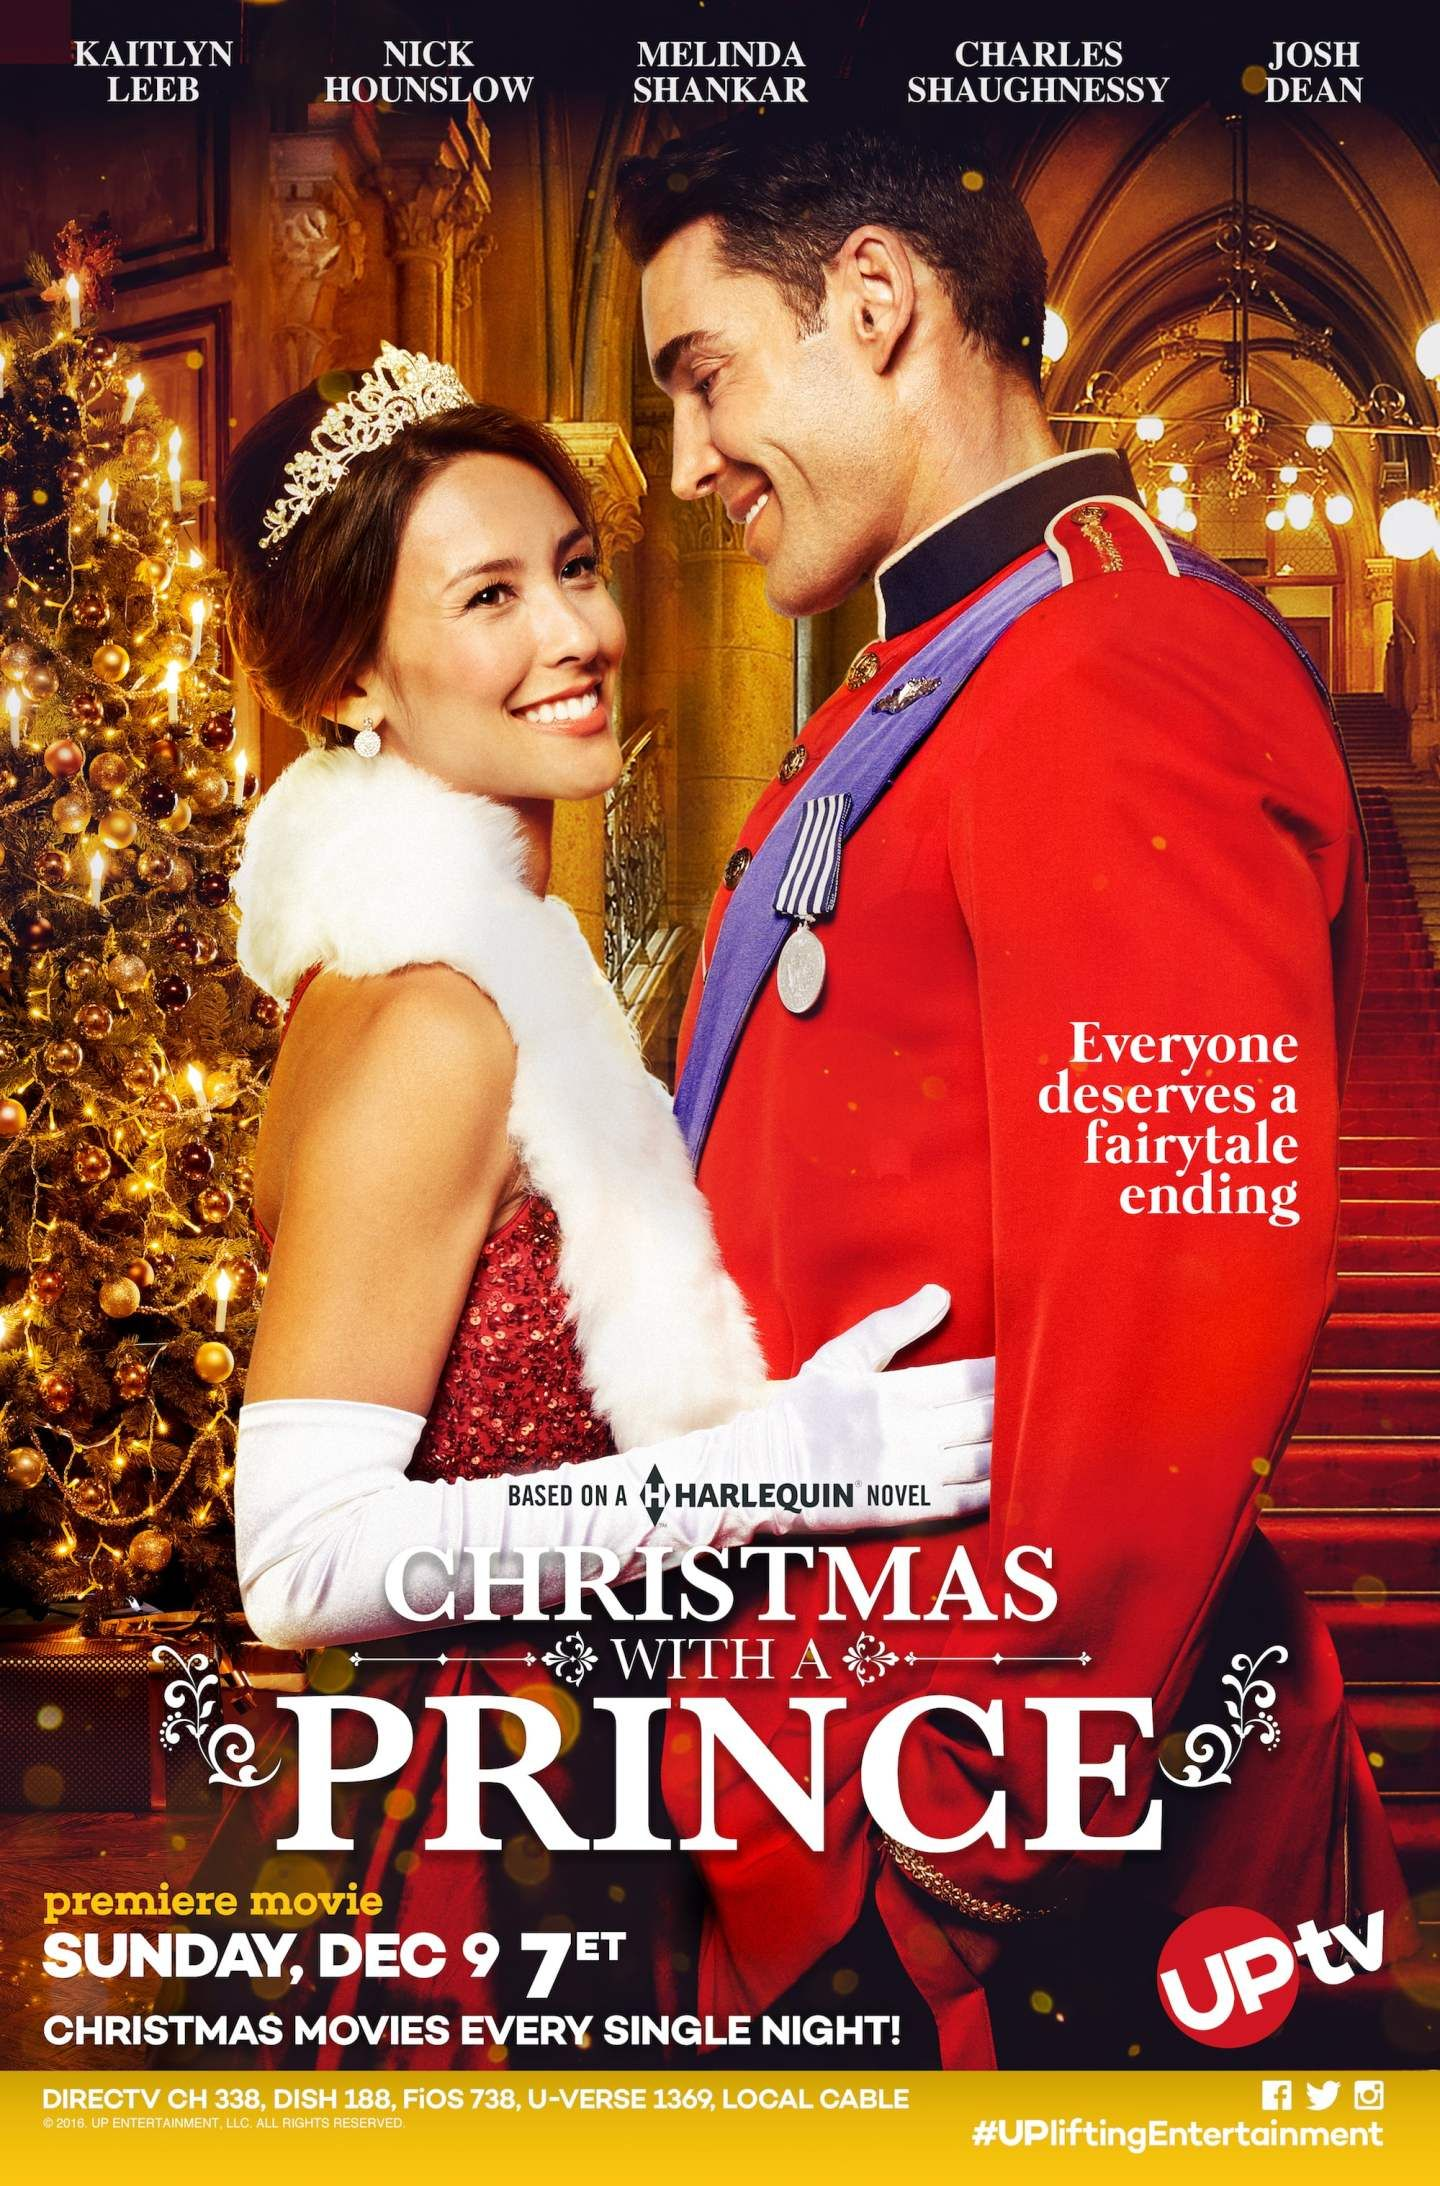 Exclusive An Interview With Kaitlyn Leeb From Uptv S Christmas With A Prince 2018 Christmas Movies On Tv Family Christmas Movies Christmas Movies